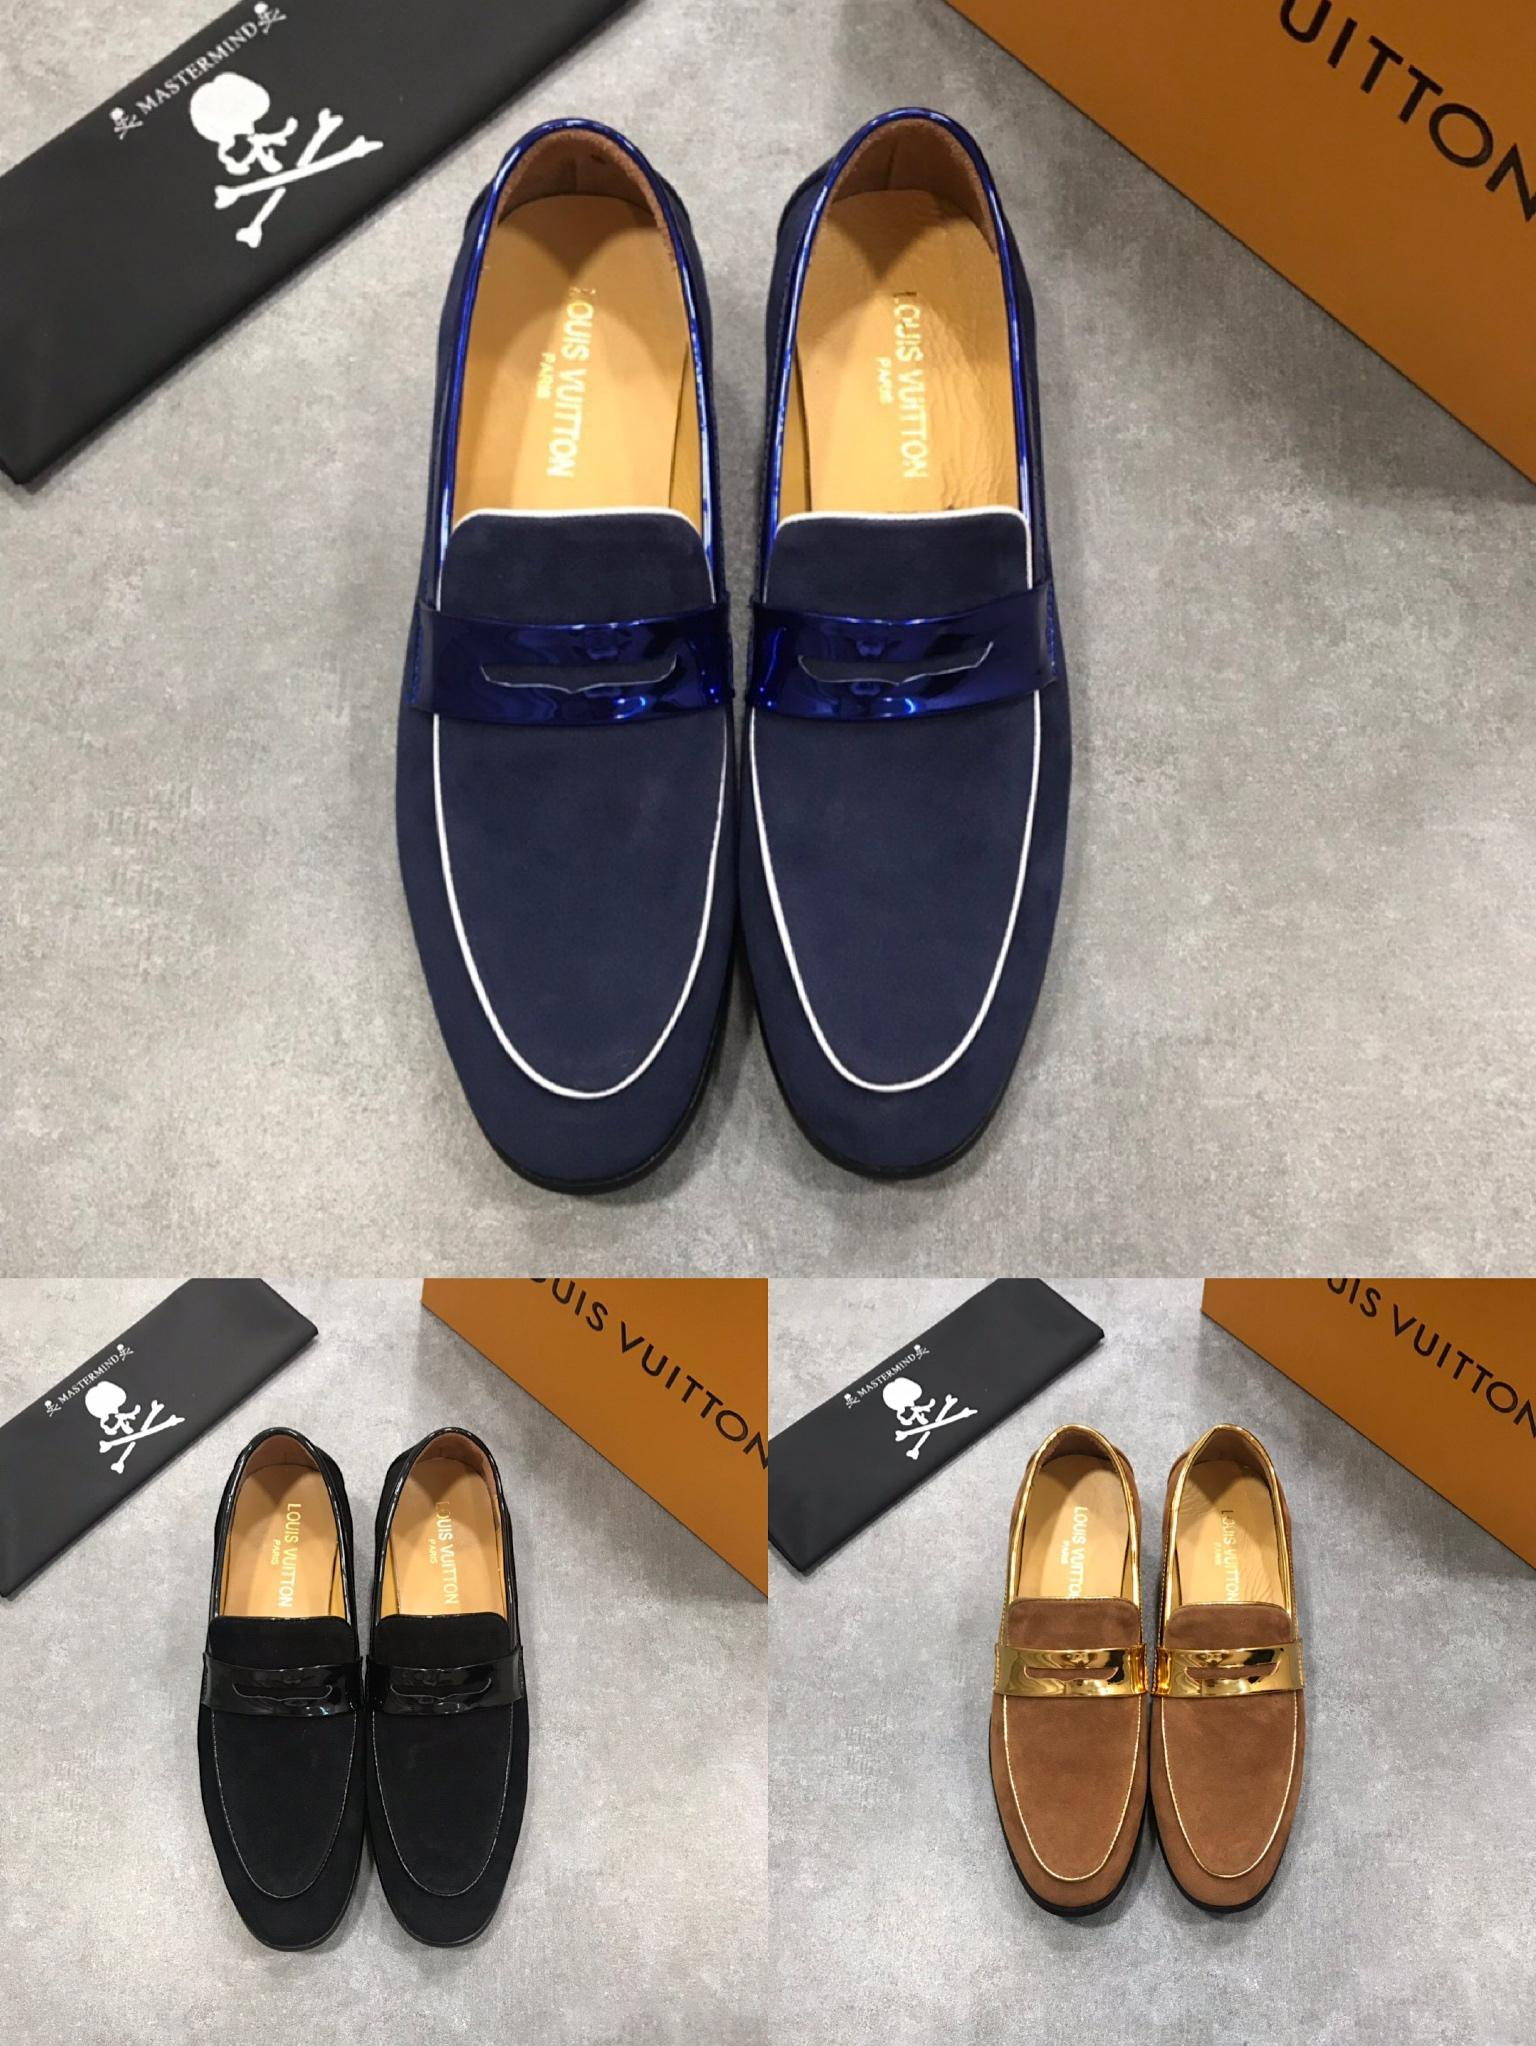 2019 New Louis Vuitton shoes LV men shoes leather shoes fashion brand shoes top